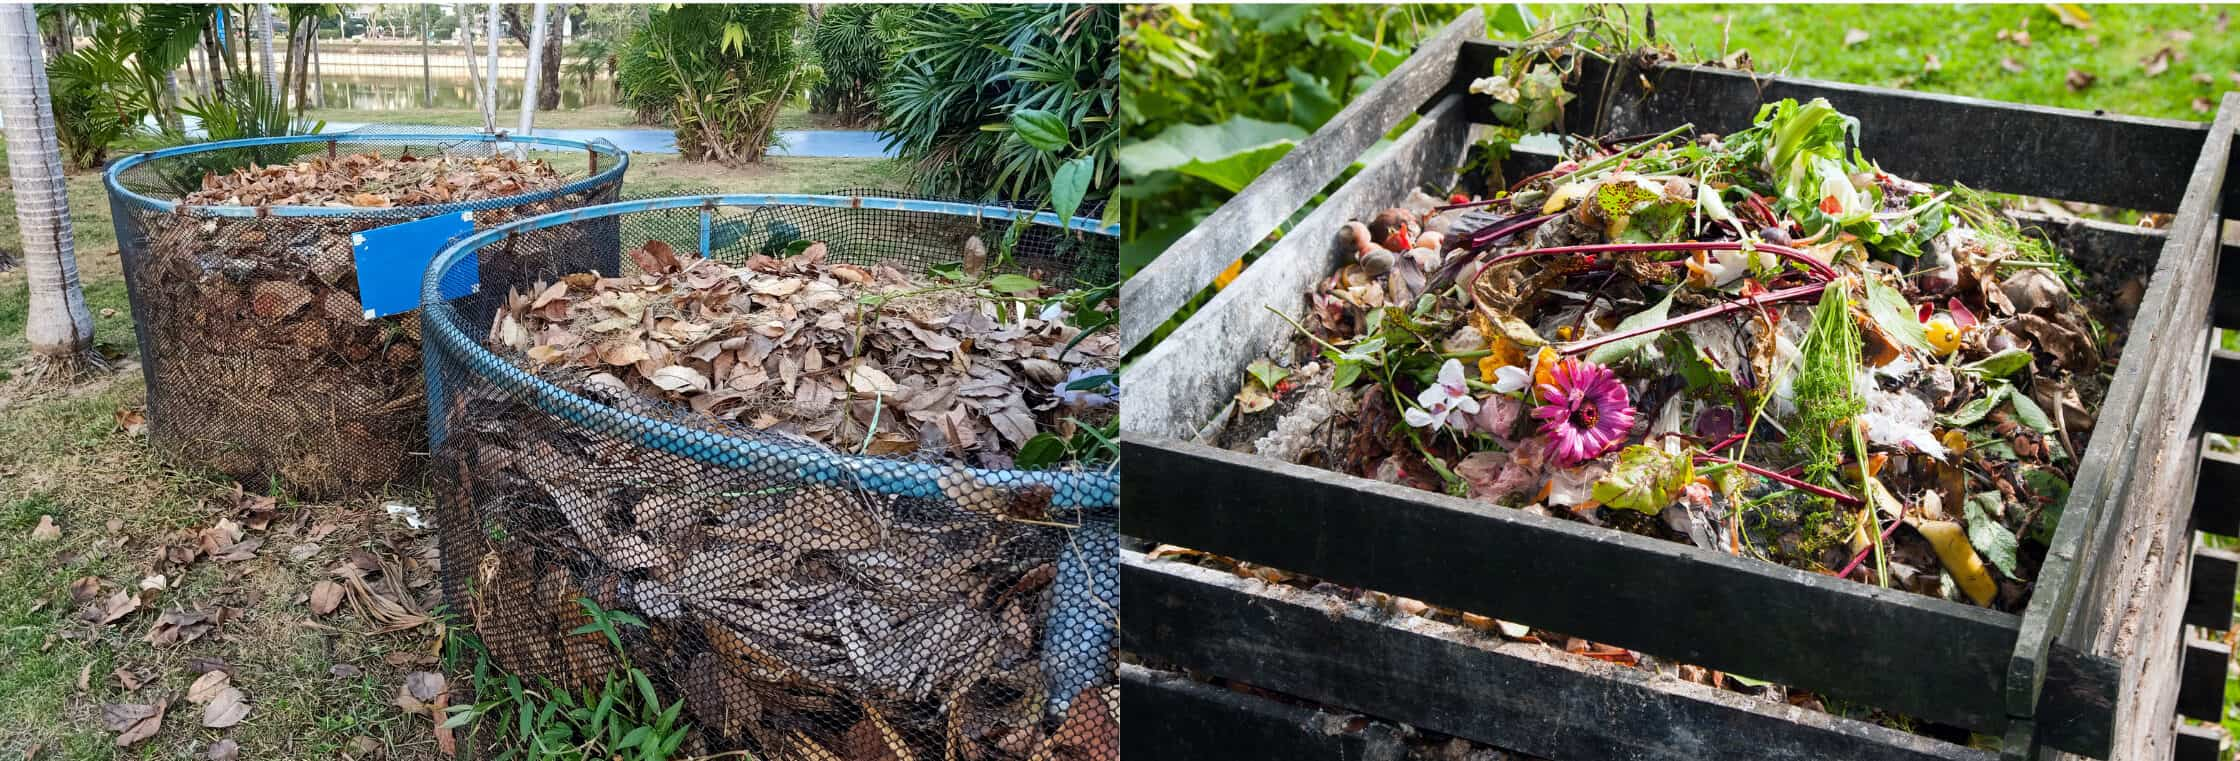 leaf mold and compost